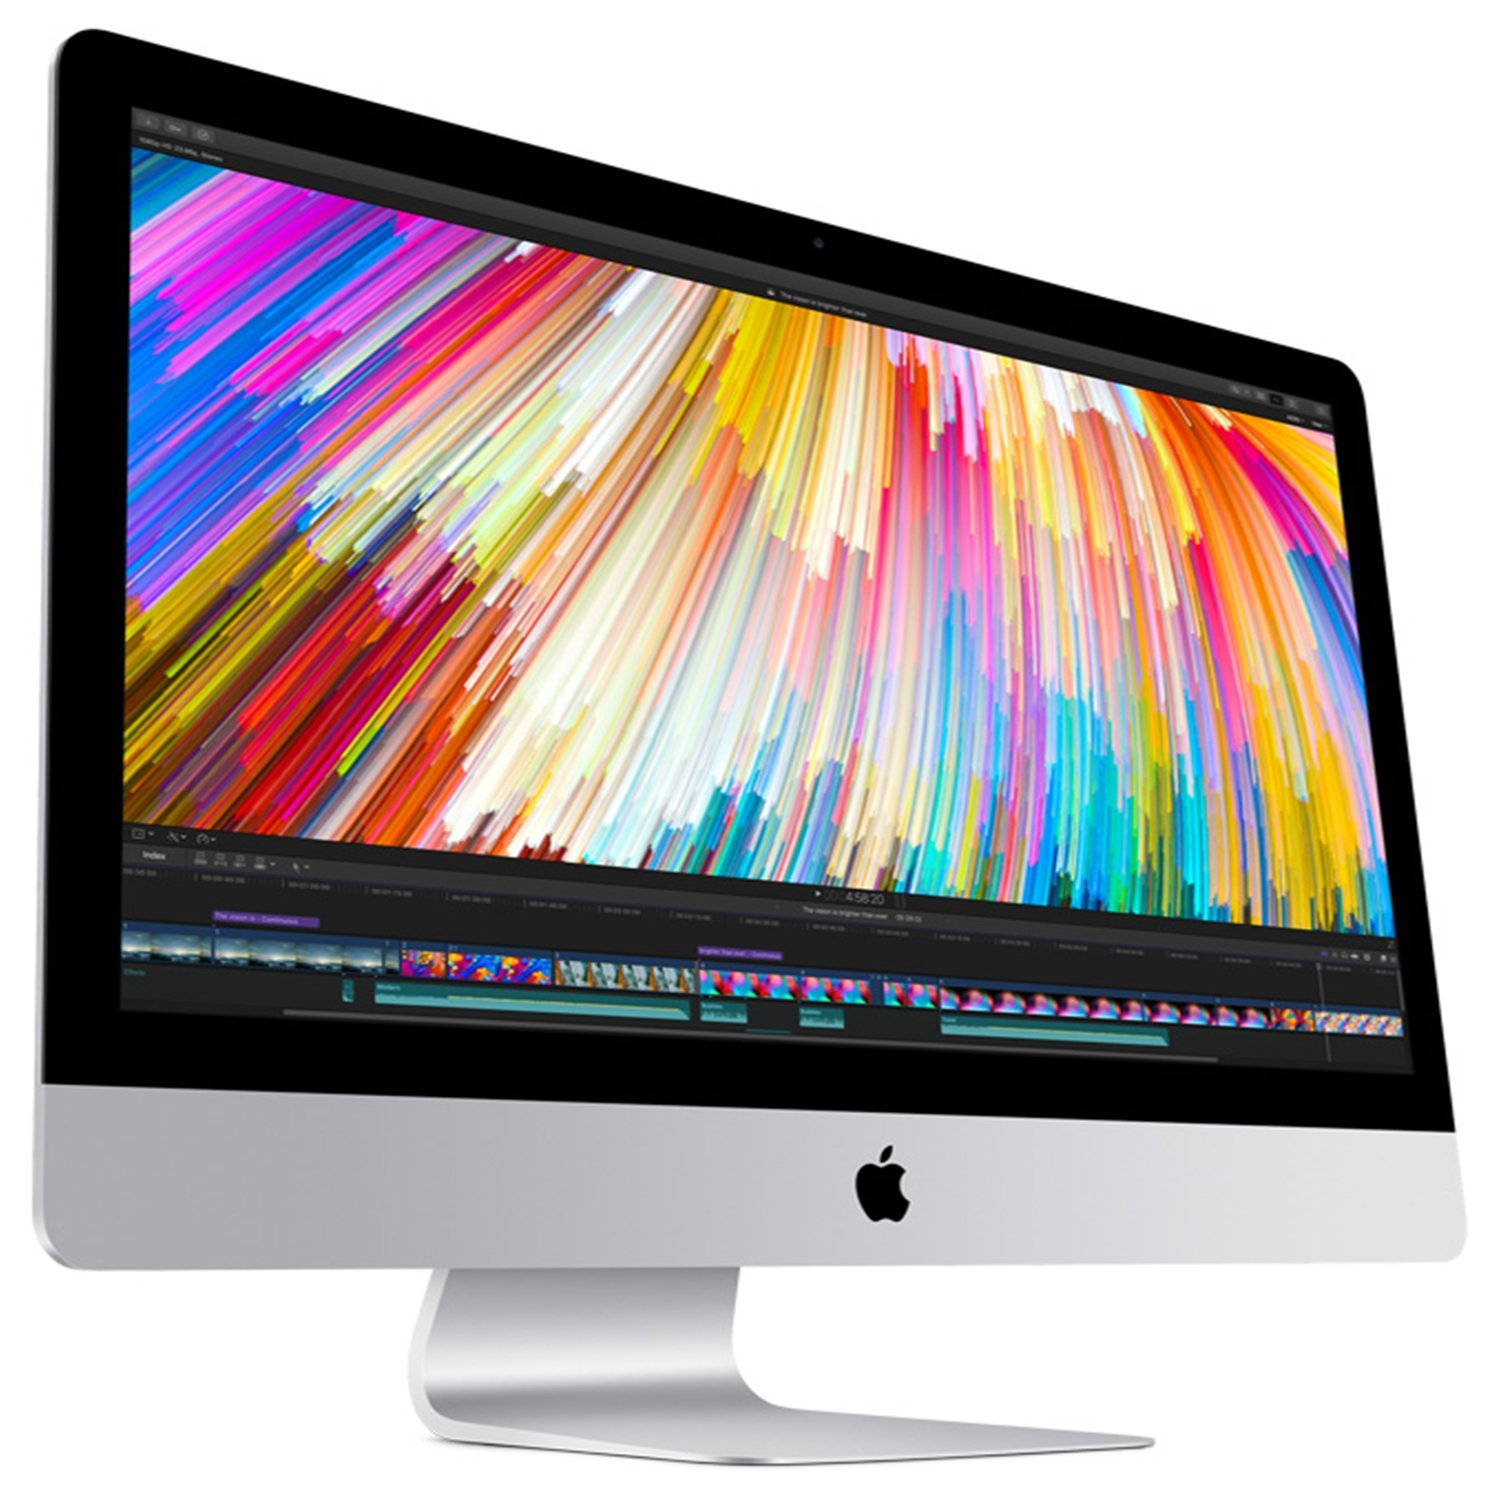 Apple iMac 27'' Desktop with Retina 5K Display (Mid 2017) - 4.2GHz Quad-Core Intel Core 7th-gen i7, 1TB SSD, 64GB 2400MHz DDR4 Memory, 8GB Radeon Pro 580 Graphics, macOS, Magic Keyboard - Spanish by Apple (Image #3)